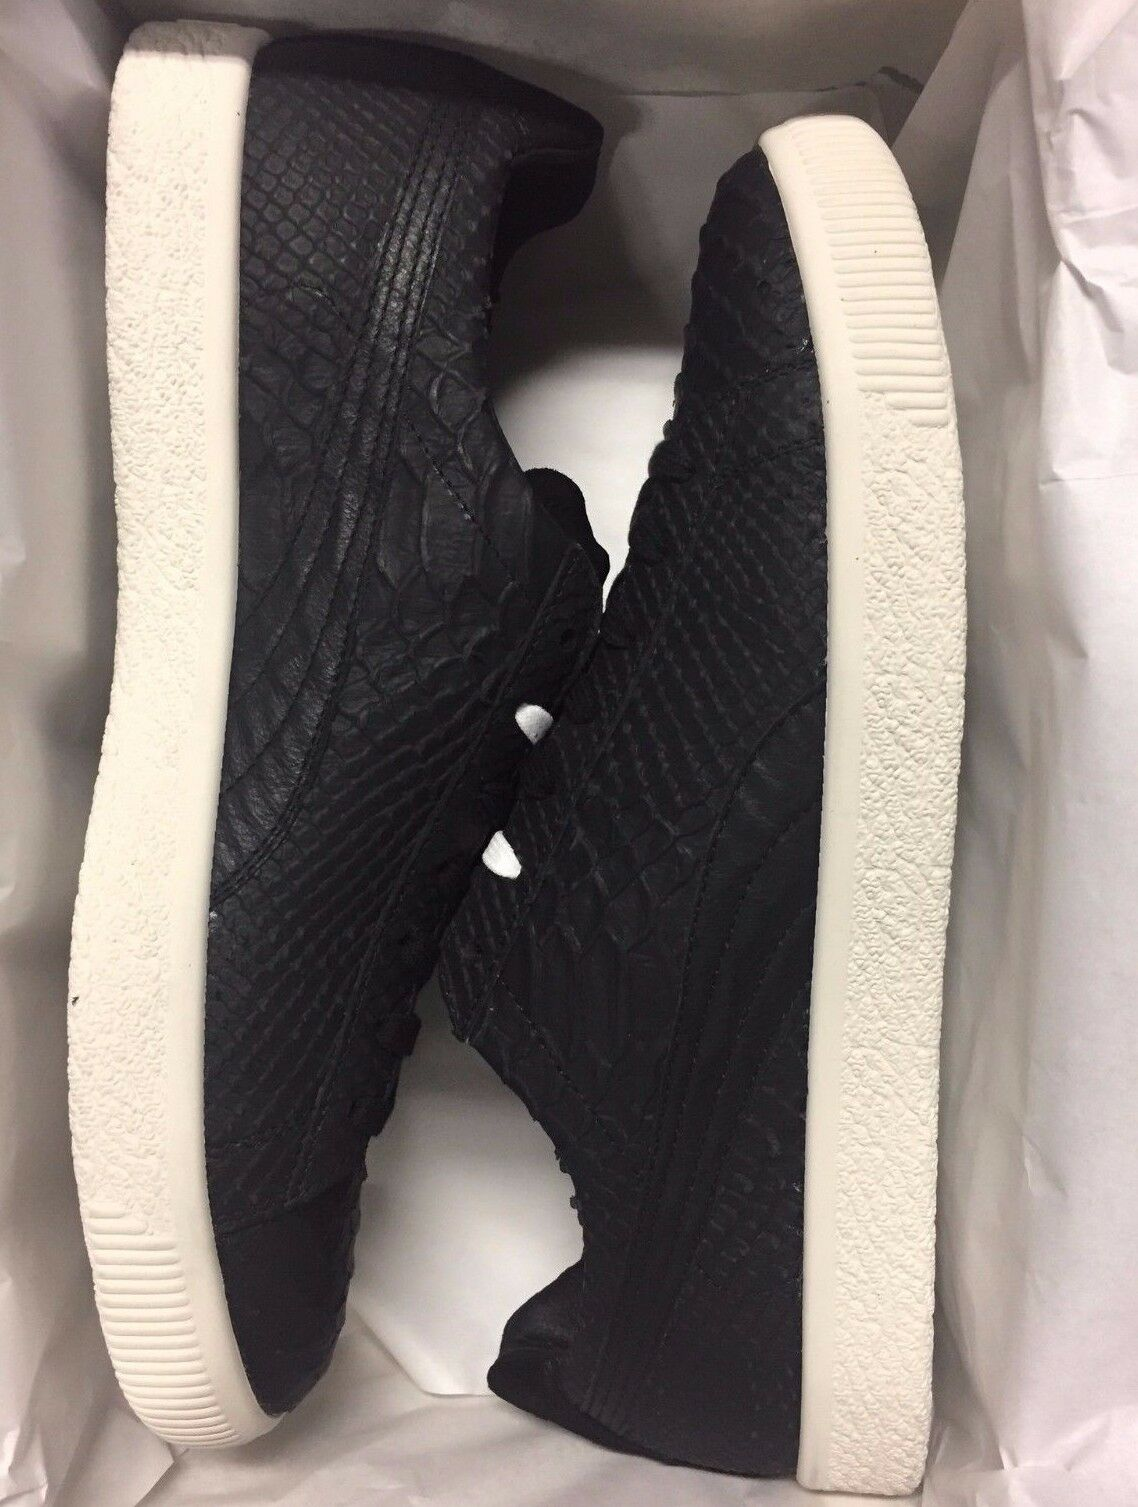 Puma Clyde MII Made in Italy Black Leather 361503 01 Black Star White 9 12